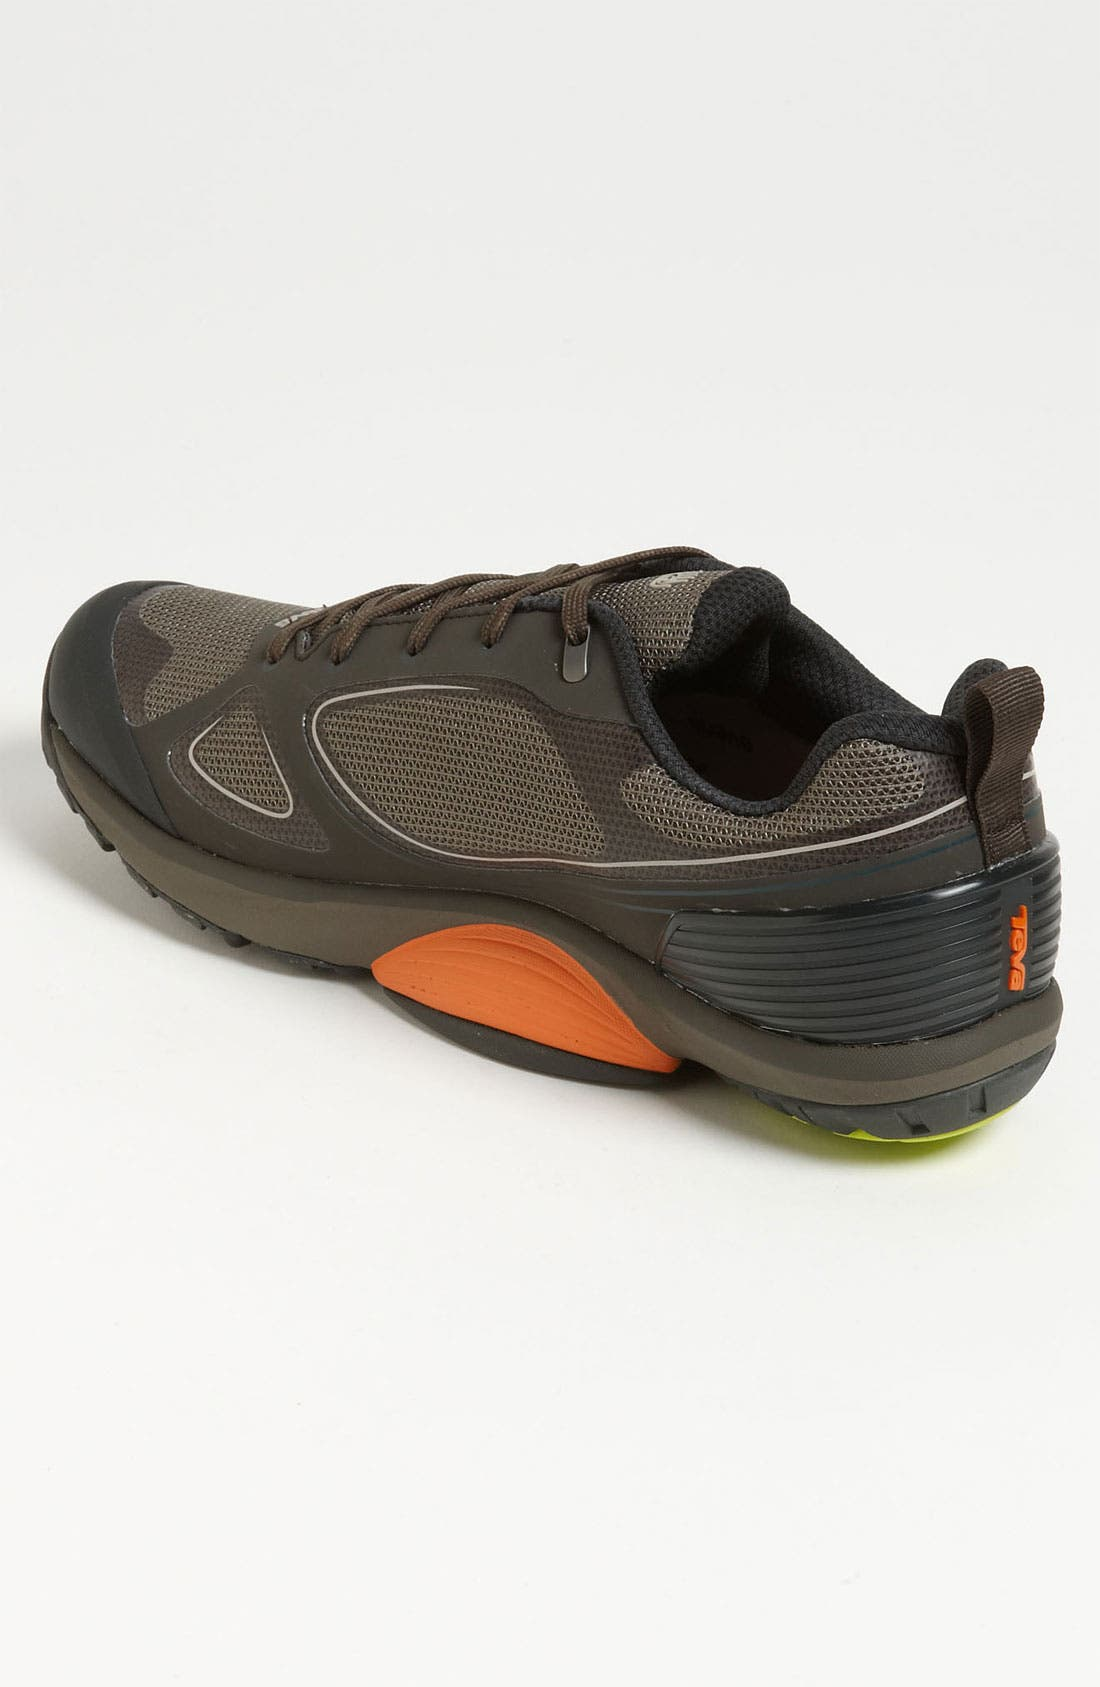 Alternate Image 2  - Teva 'TevaSphere Trail' Training Shoe (Men)